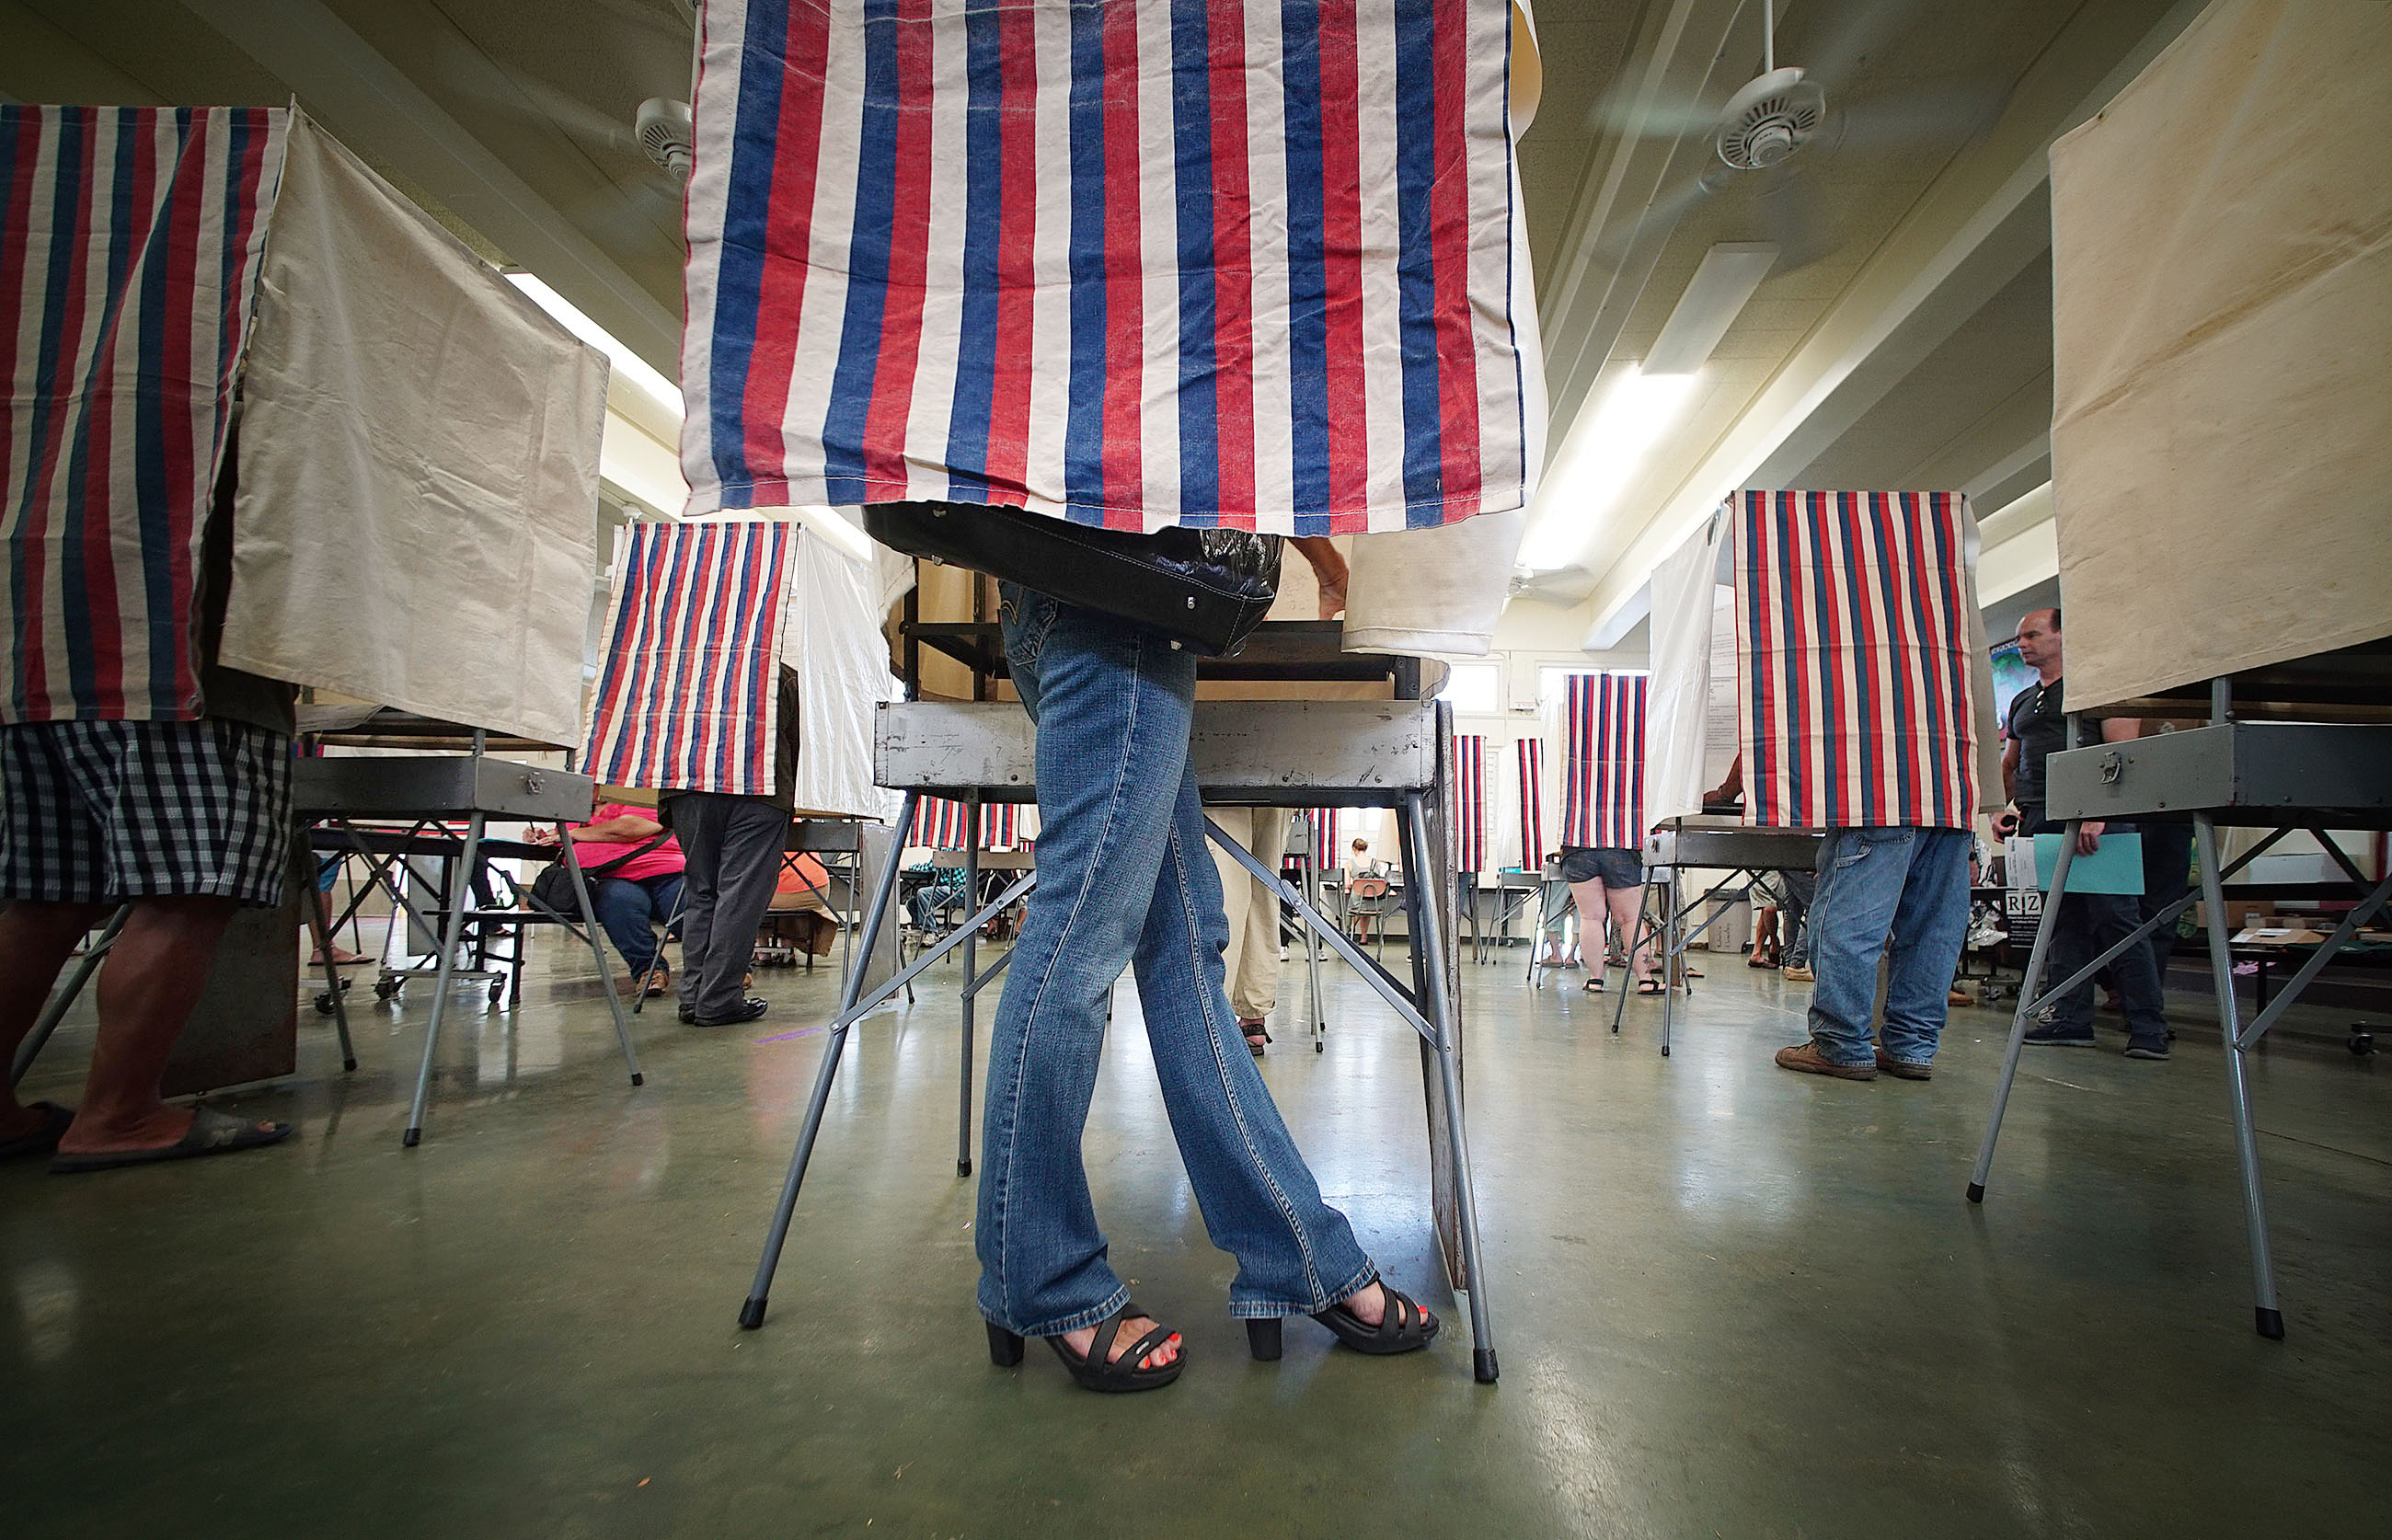 <p>Fashionable shoes brought this early morning voter to the polls at Kahaluu Elementary School. — Cory Lum/Civil Beat</p>